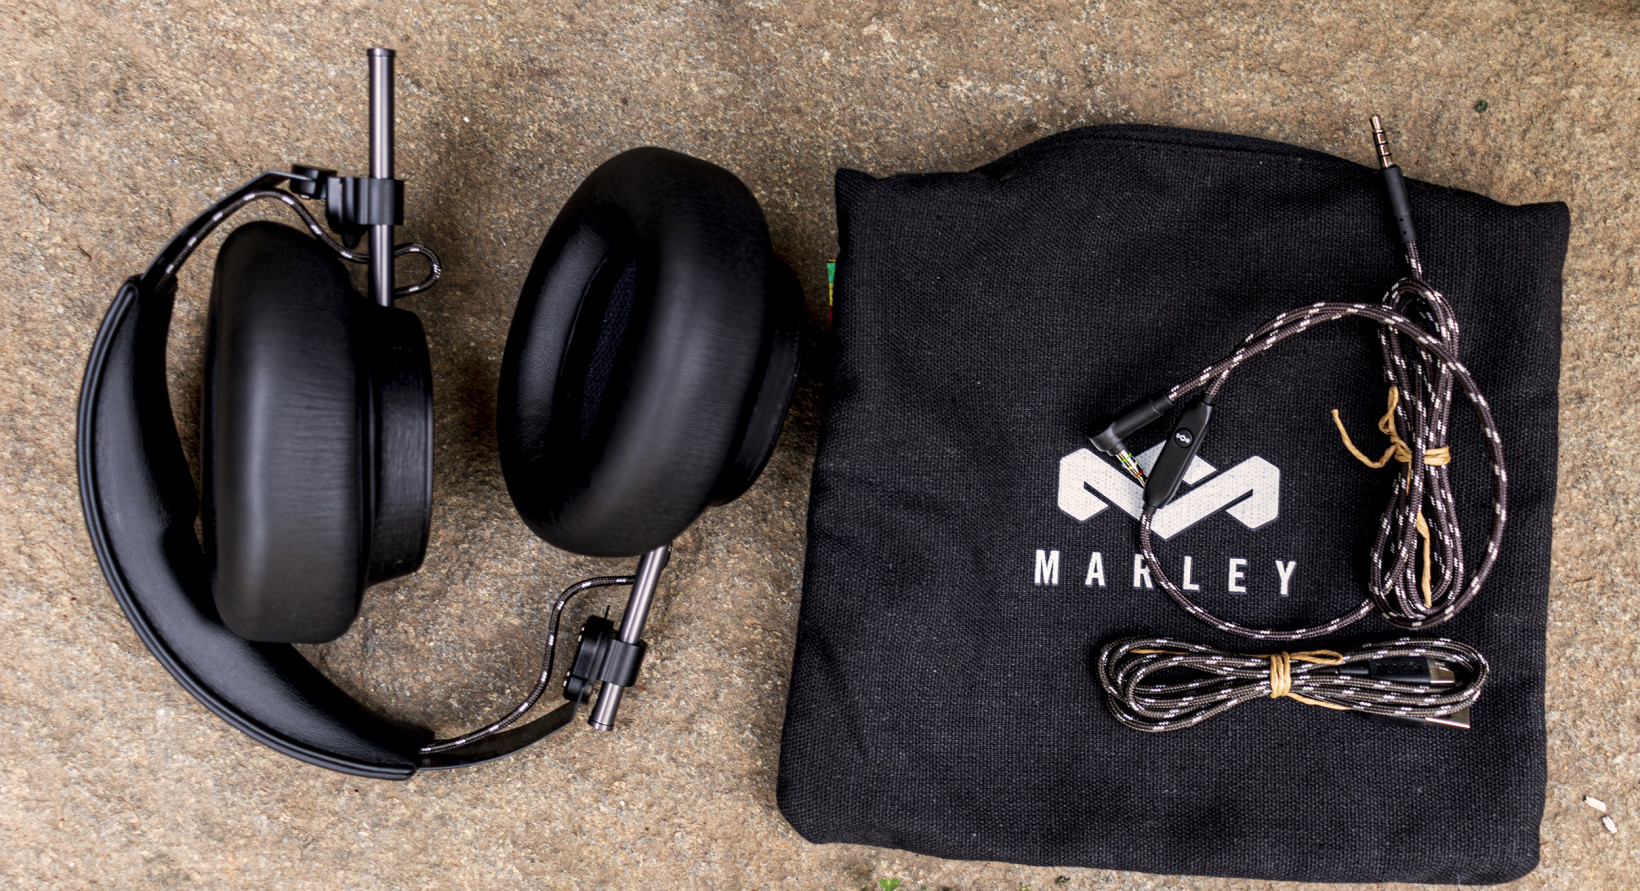 The Exodus ANC headphones come with a cloth case and braided cables